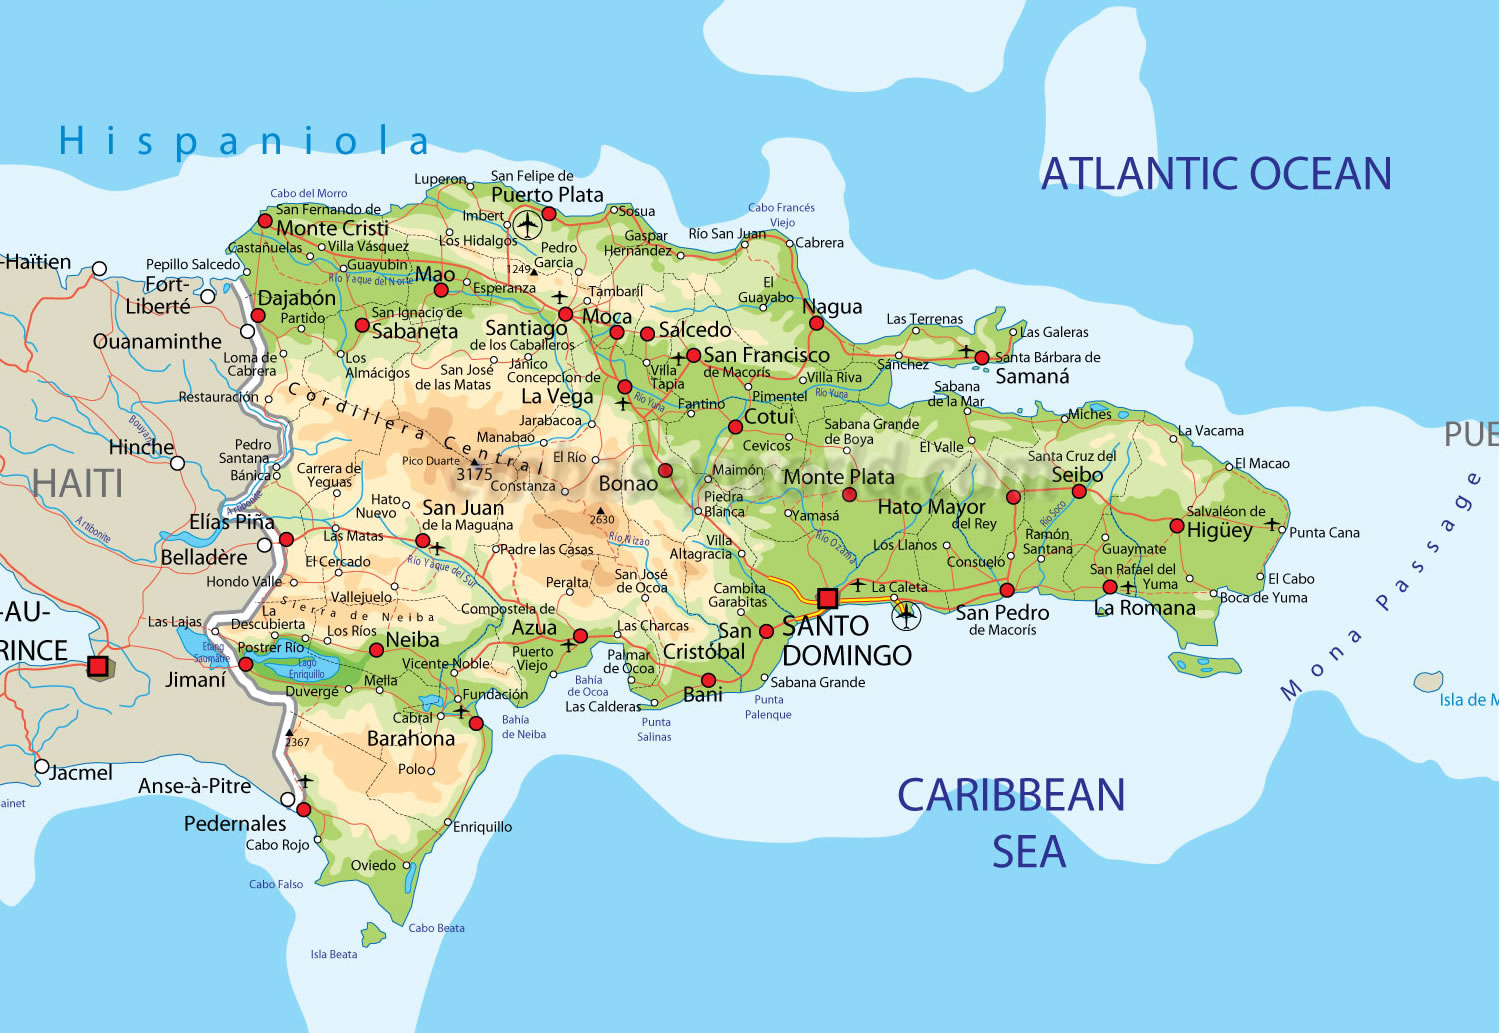 Dominican Republic Village Youth - Map of us and dominican republic